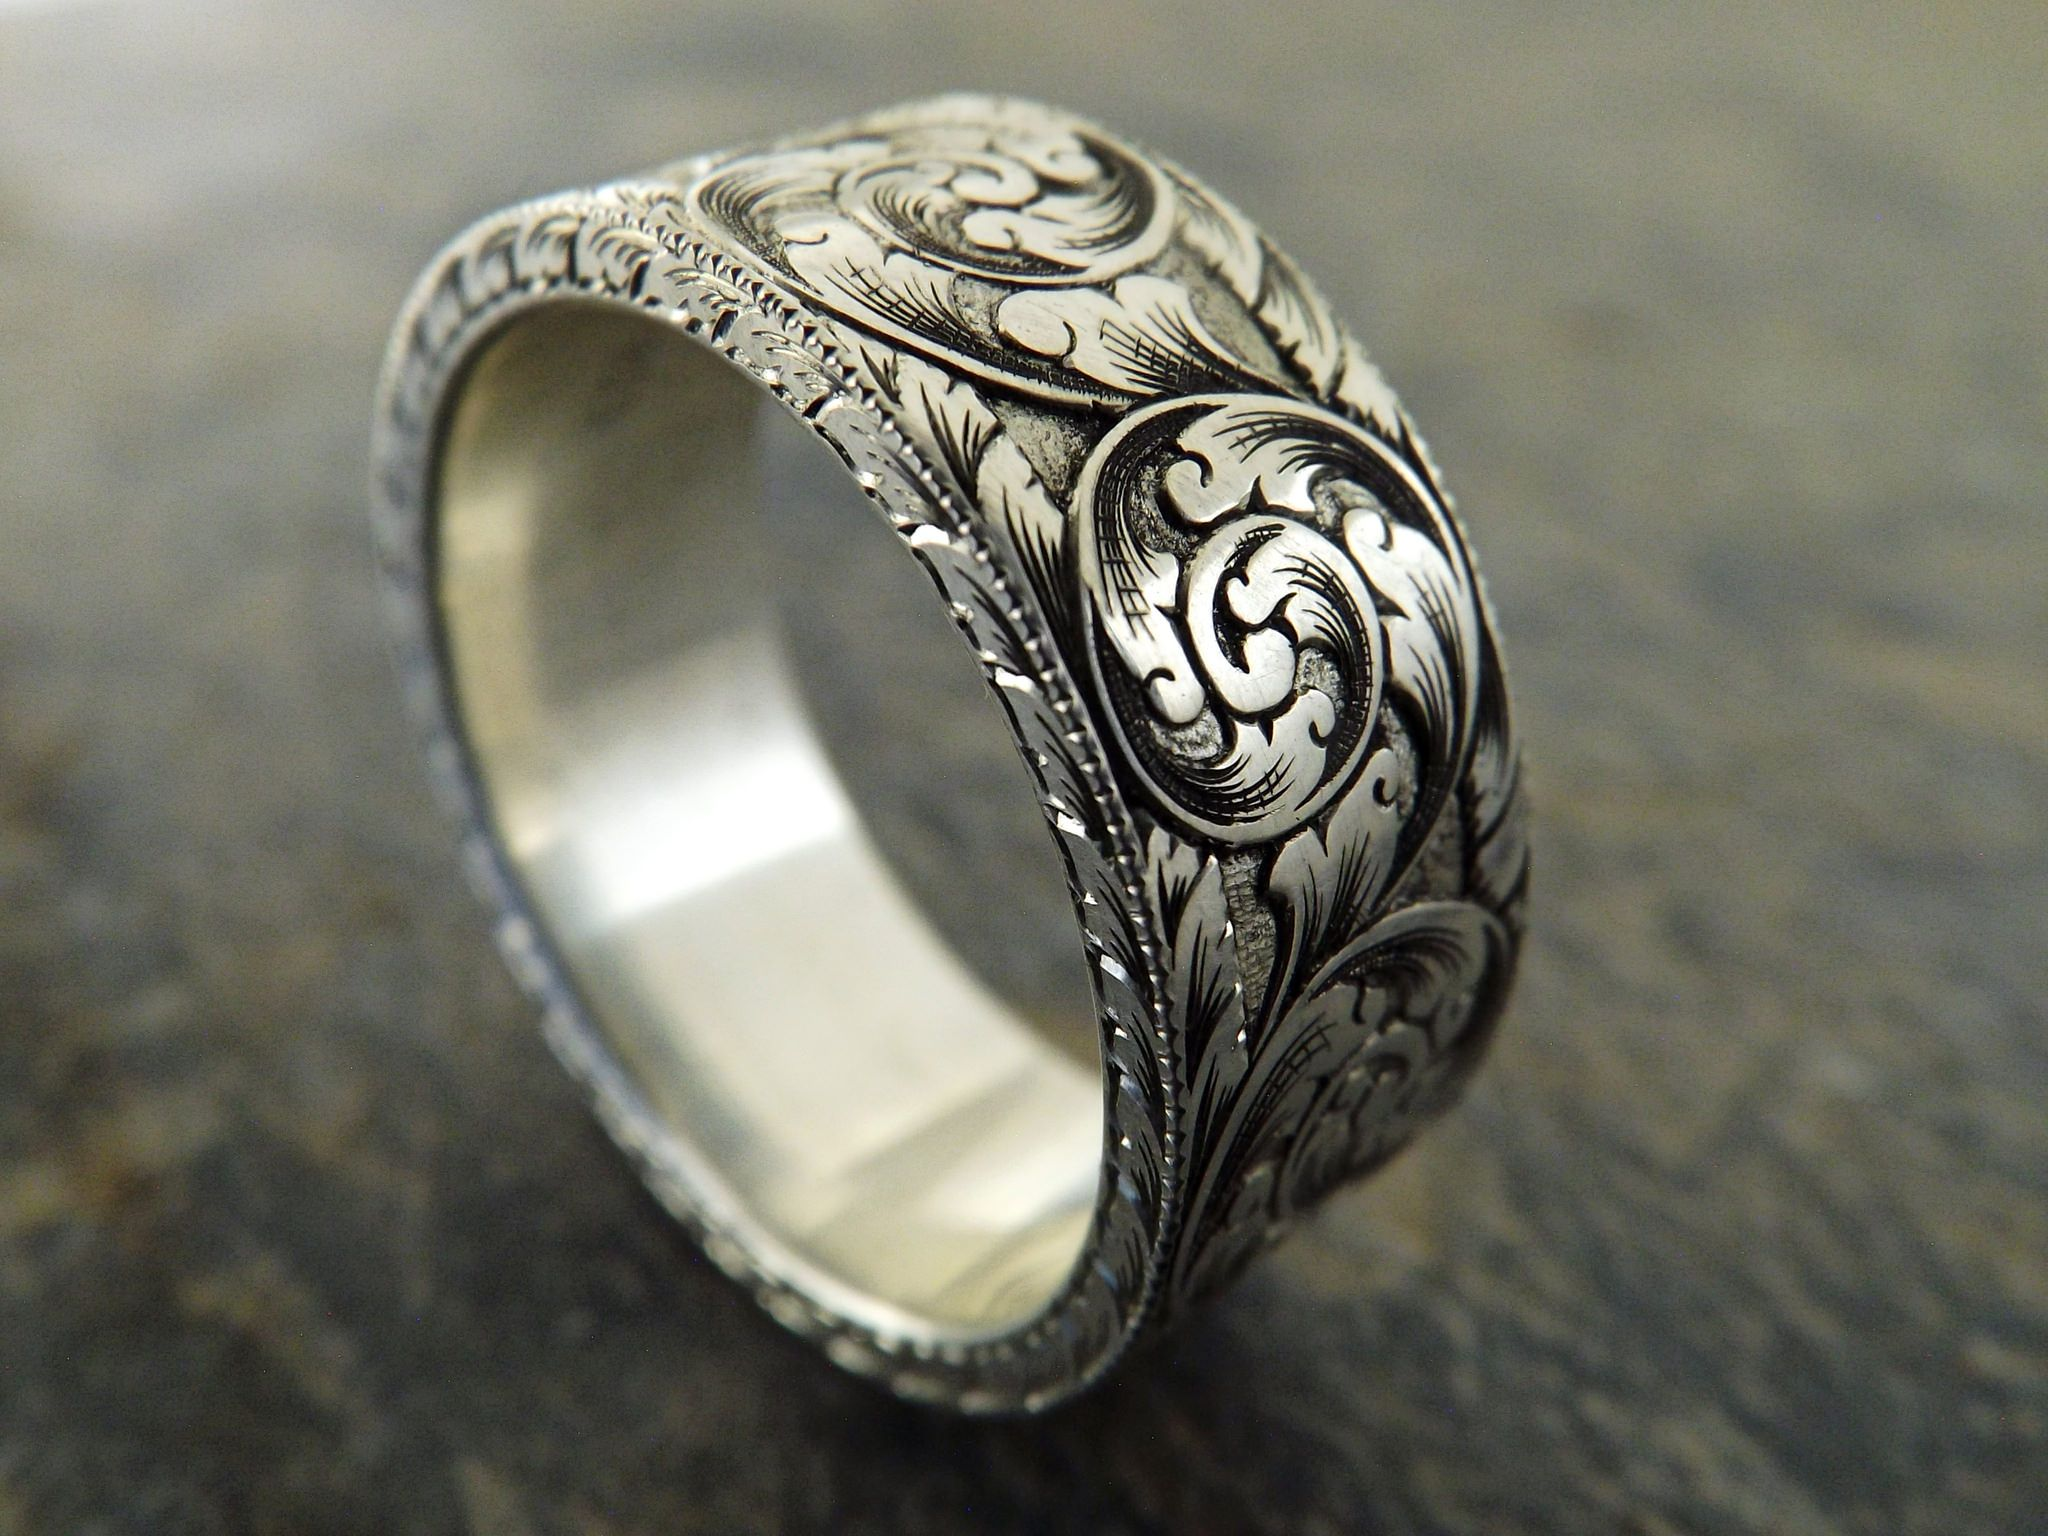 customized rings band tone ambrosia wedding engraved toned products two vintage matching